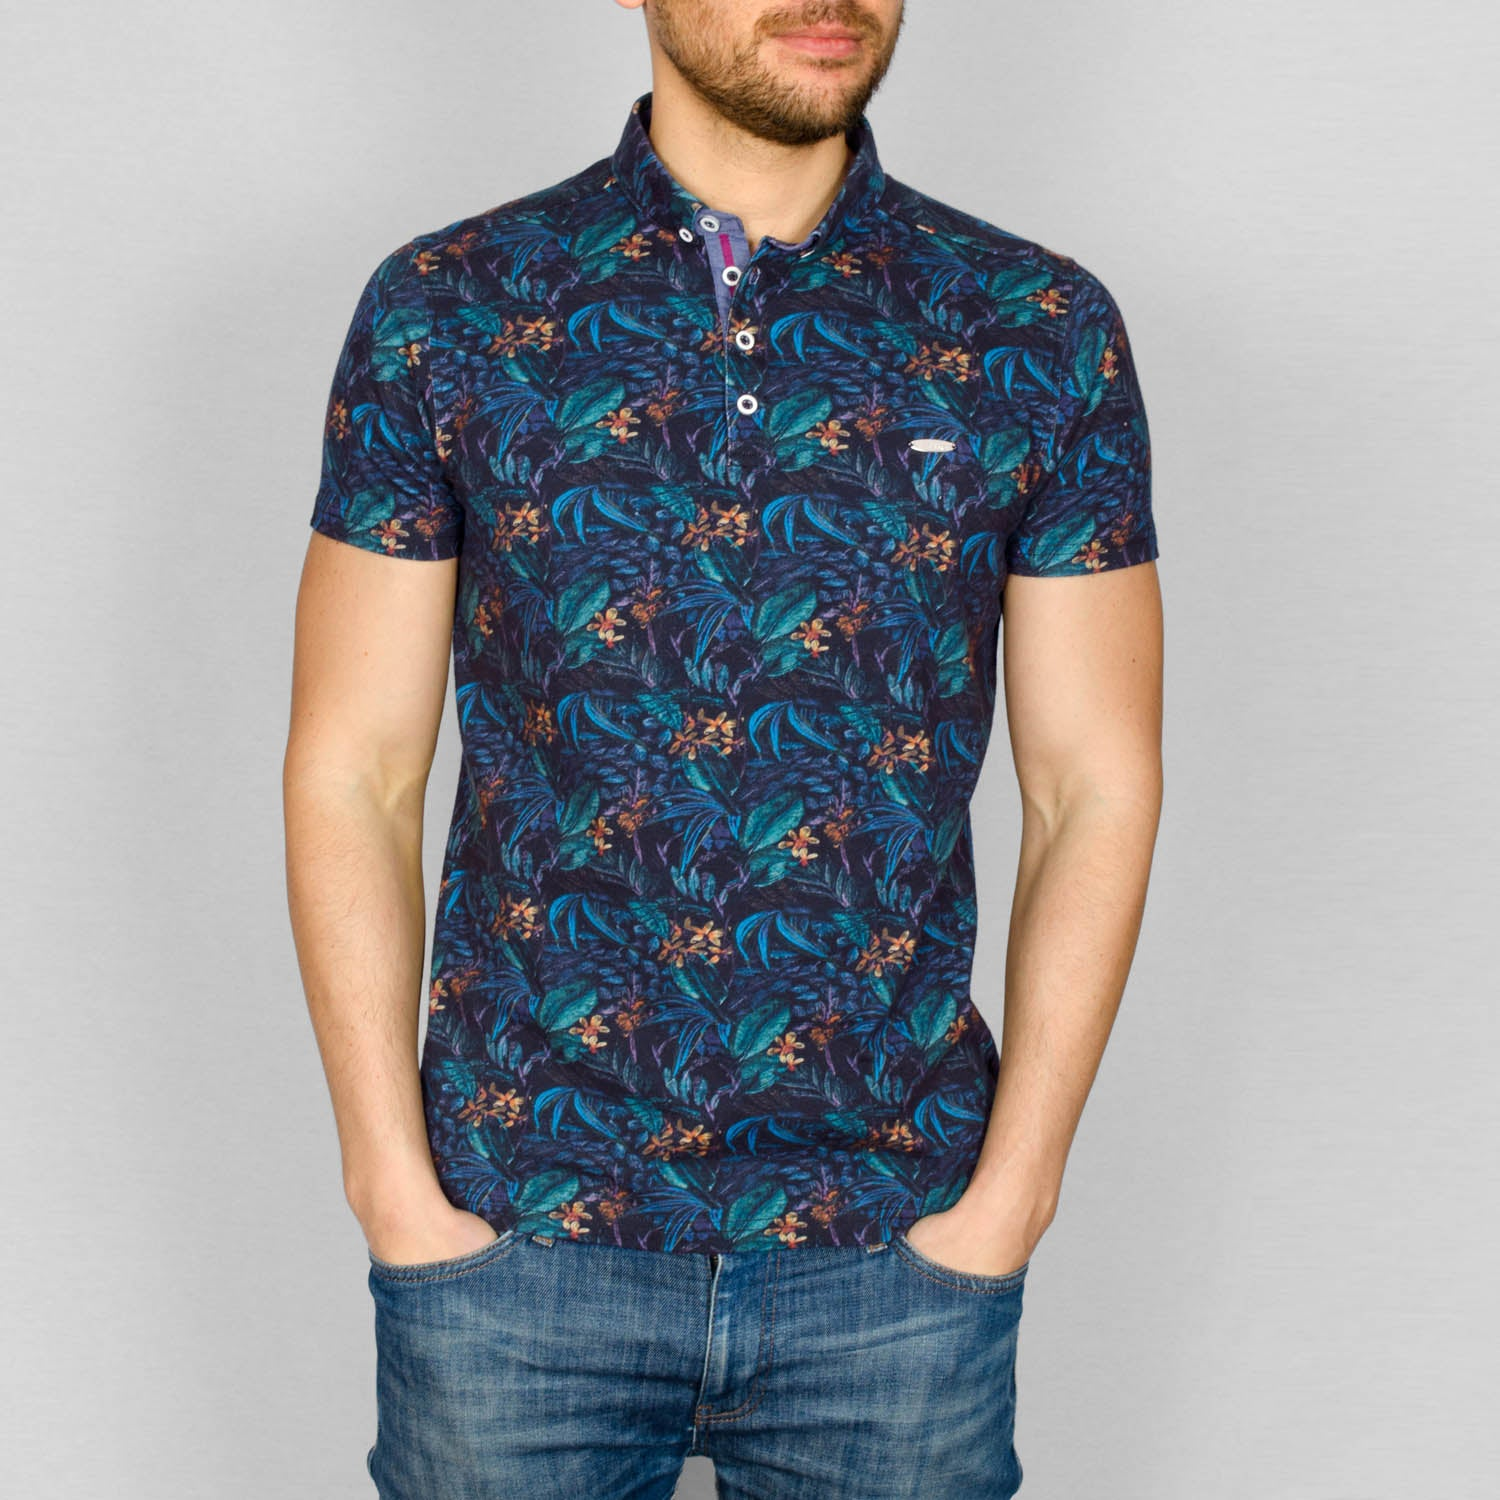 a62b5078 Men's Polo Shirt - Dark Tropical Print - Careon – Bewley & Ritch